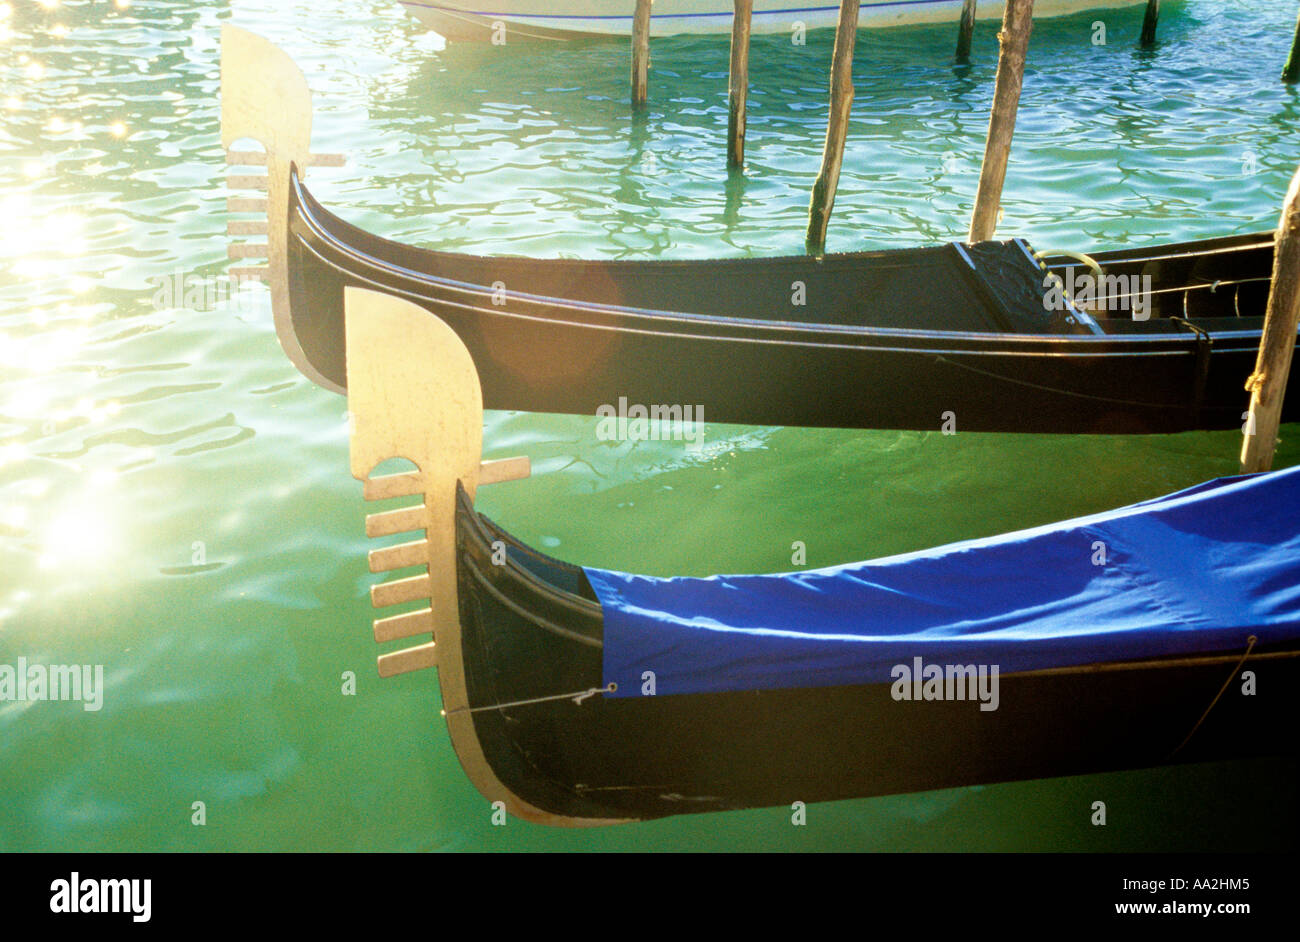 Italy, Venice, gondolas in sun on water surface Canale Grande Grand Canal, carved prows of gondolas moored by canal Stock Photo